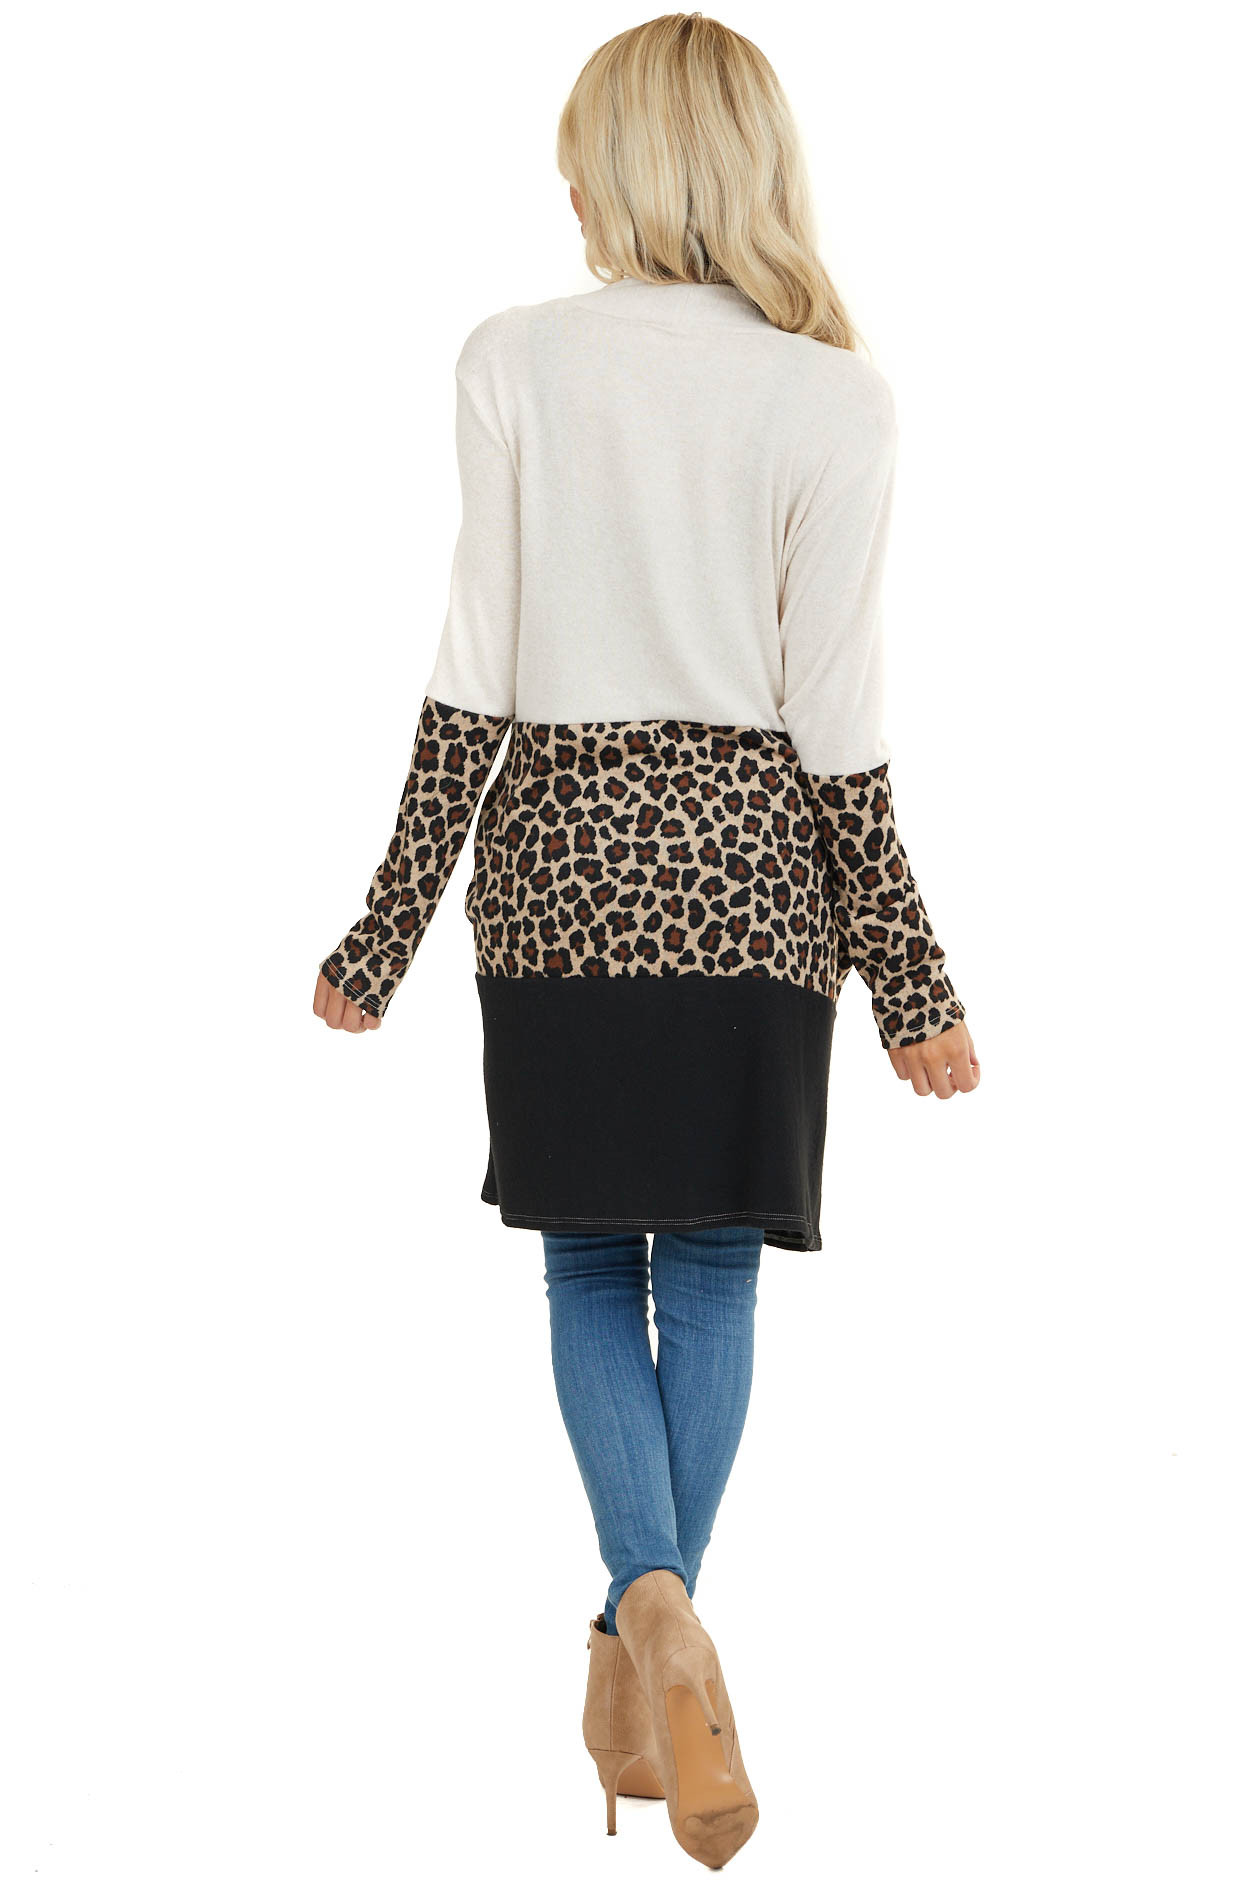 Beige and Black Cardigan with Leopard Print Colorblock